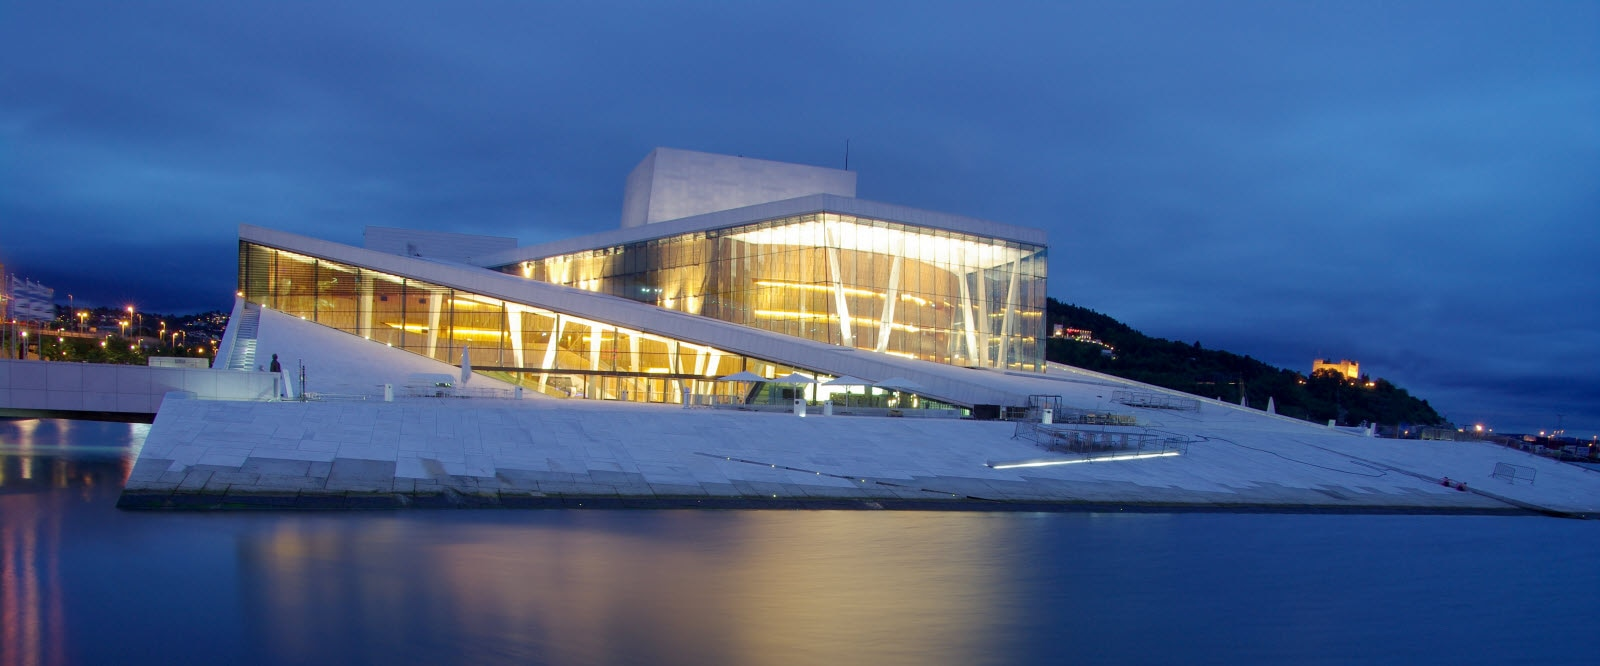 norway-oslo-opera-house-mostphotos.jpg